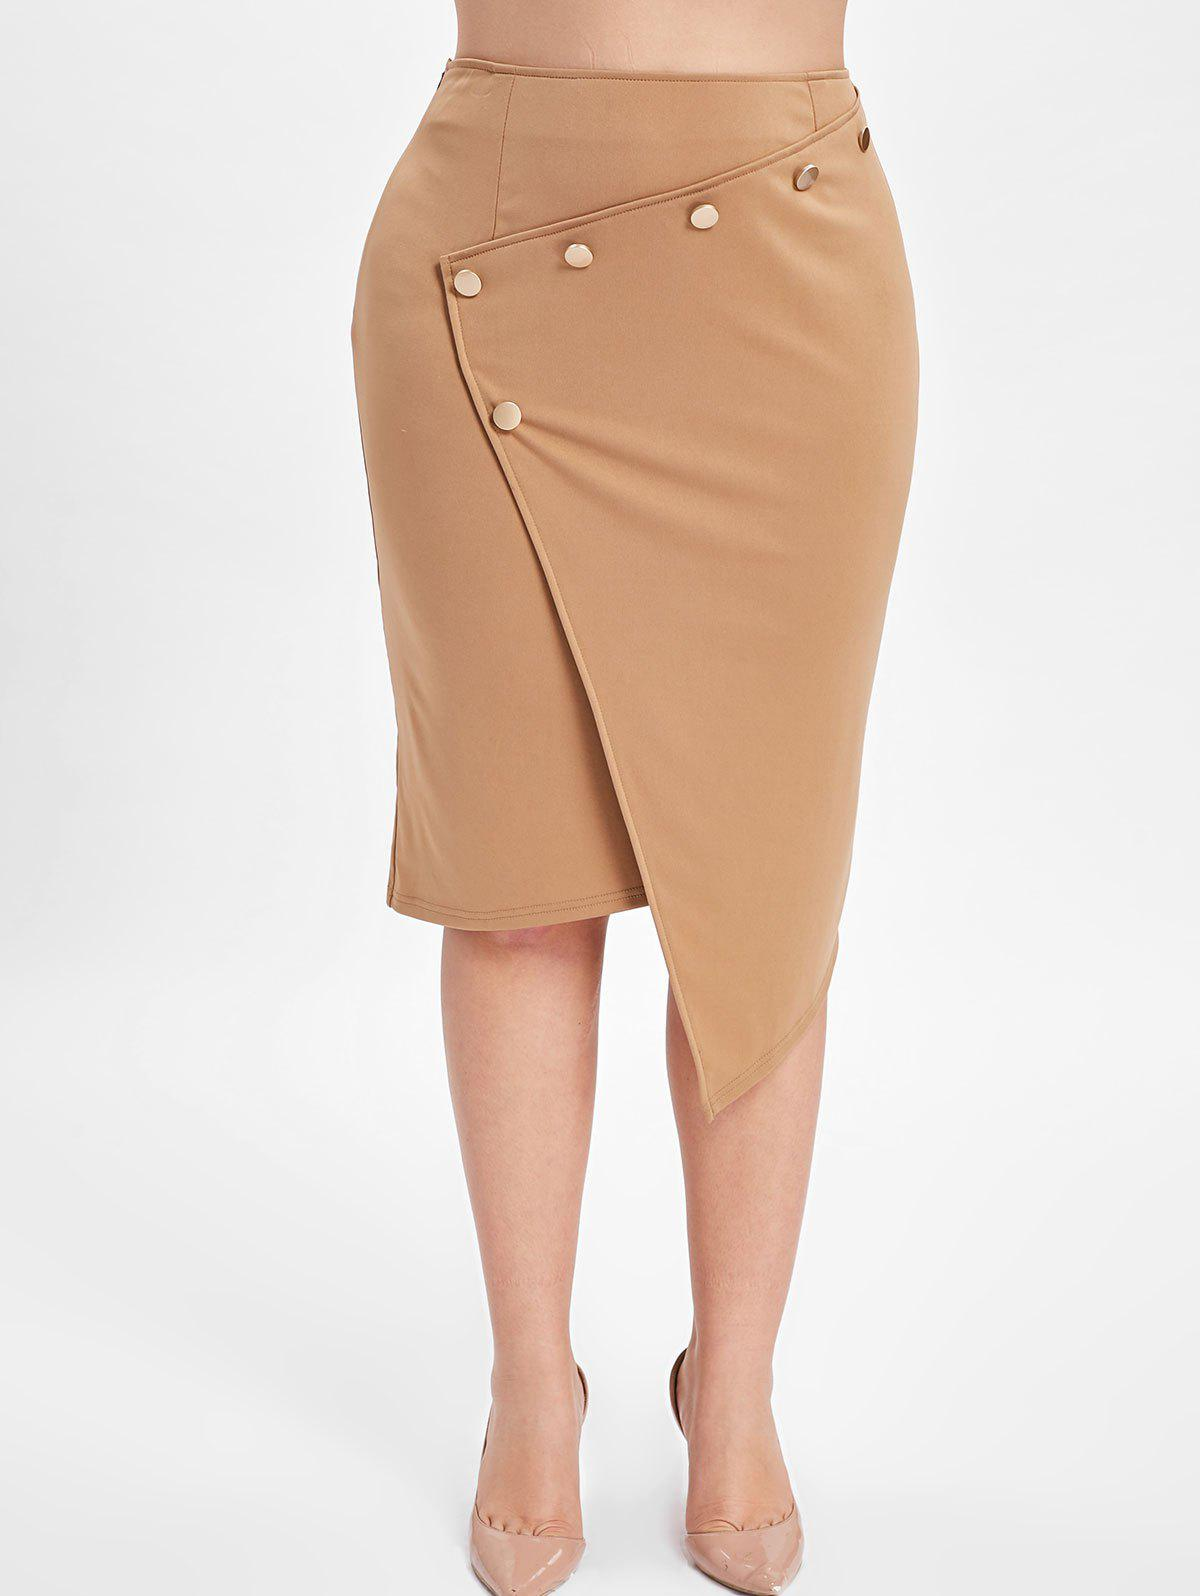 Fancy Button Embellished Plus Size Asymmetrical Skirt